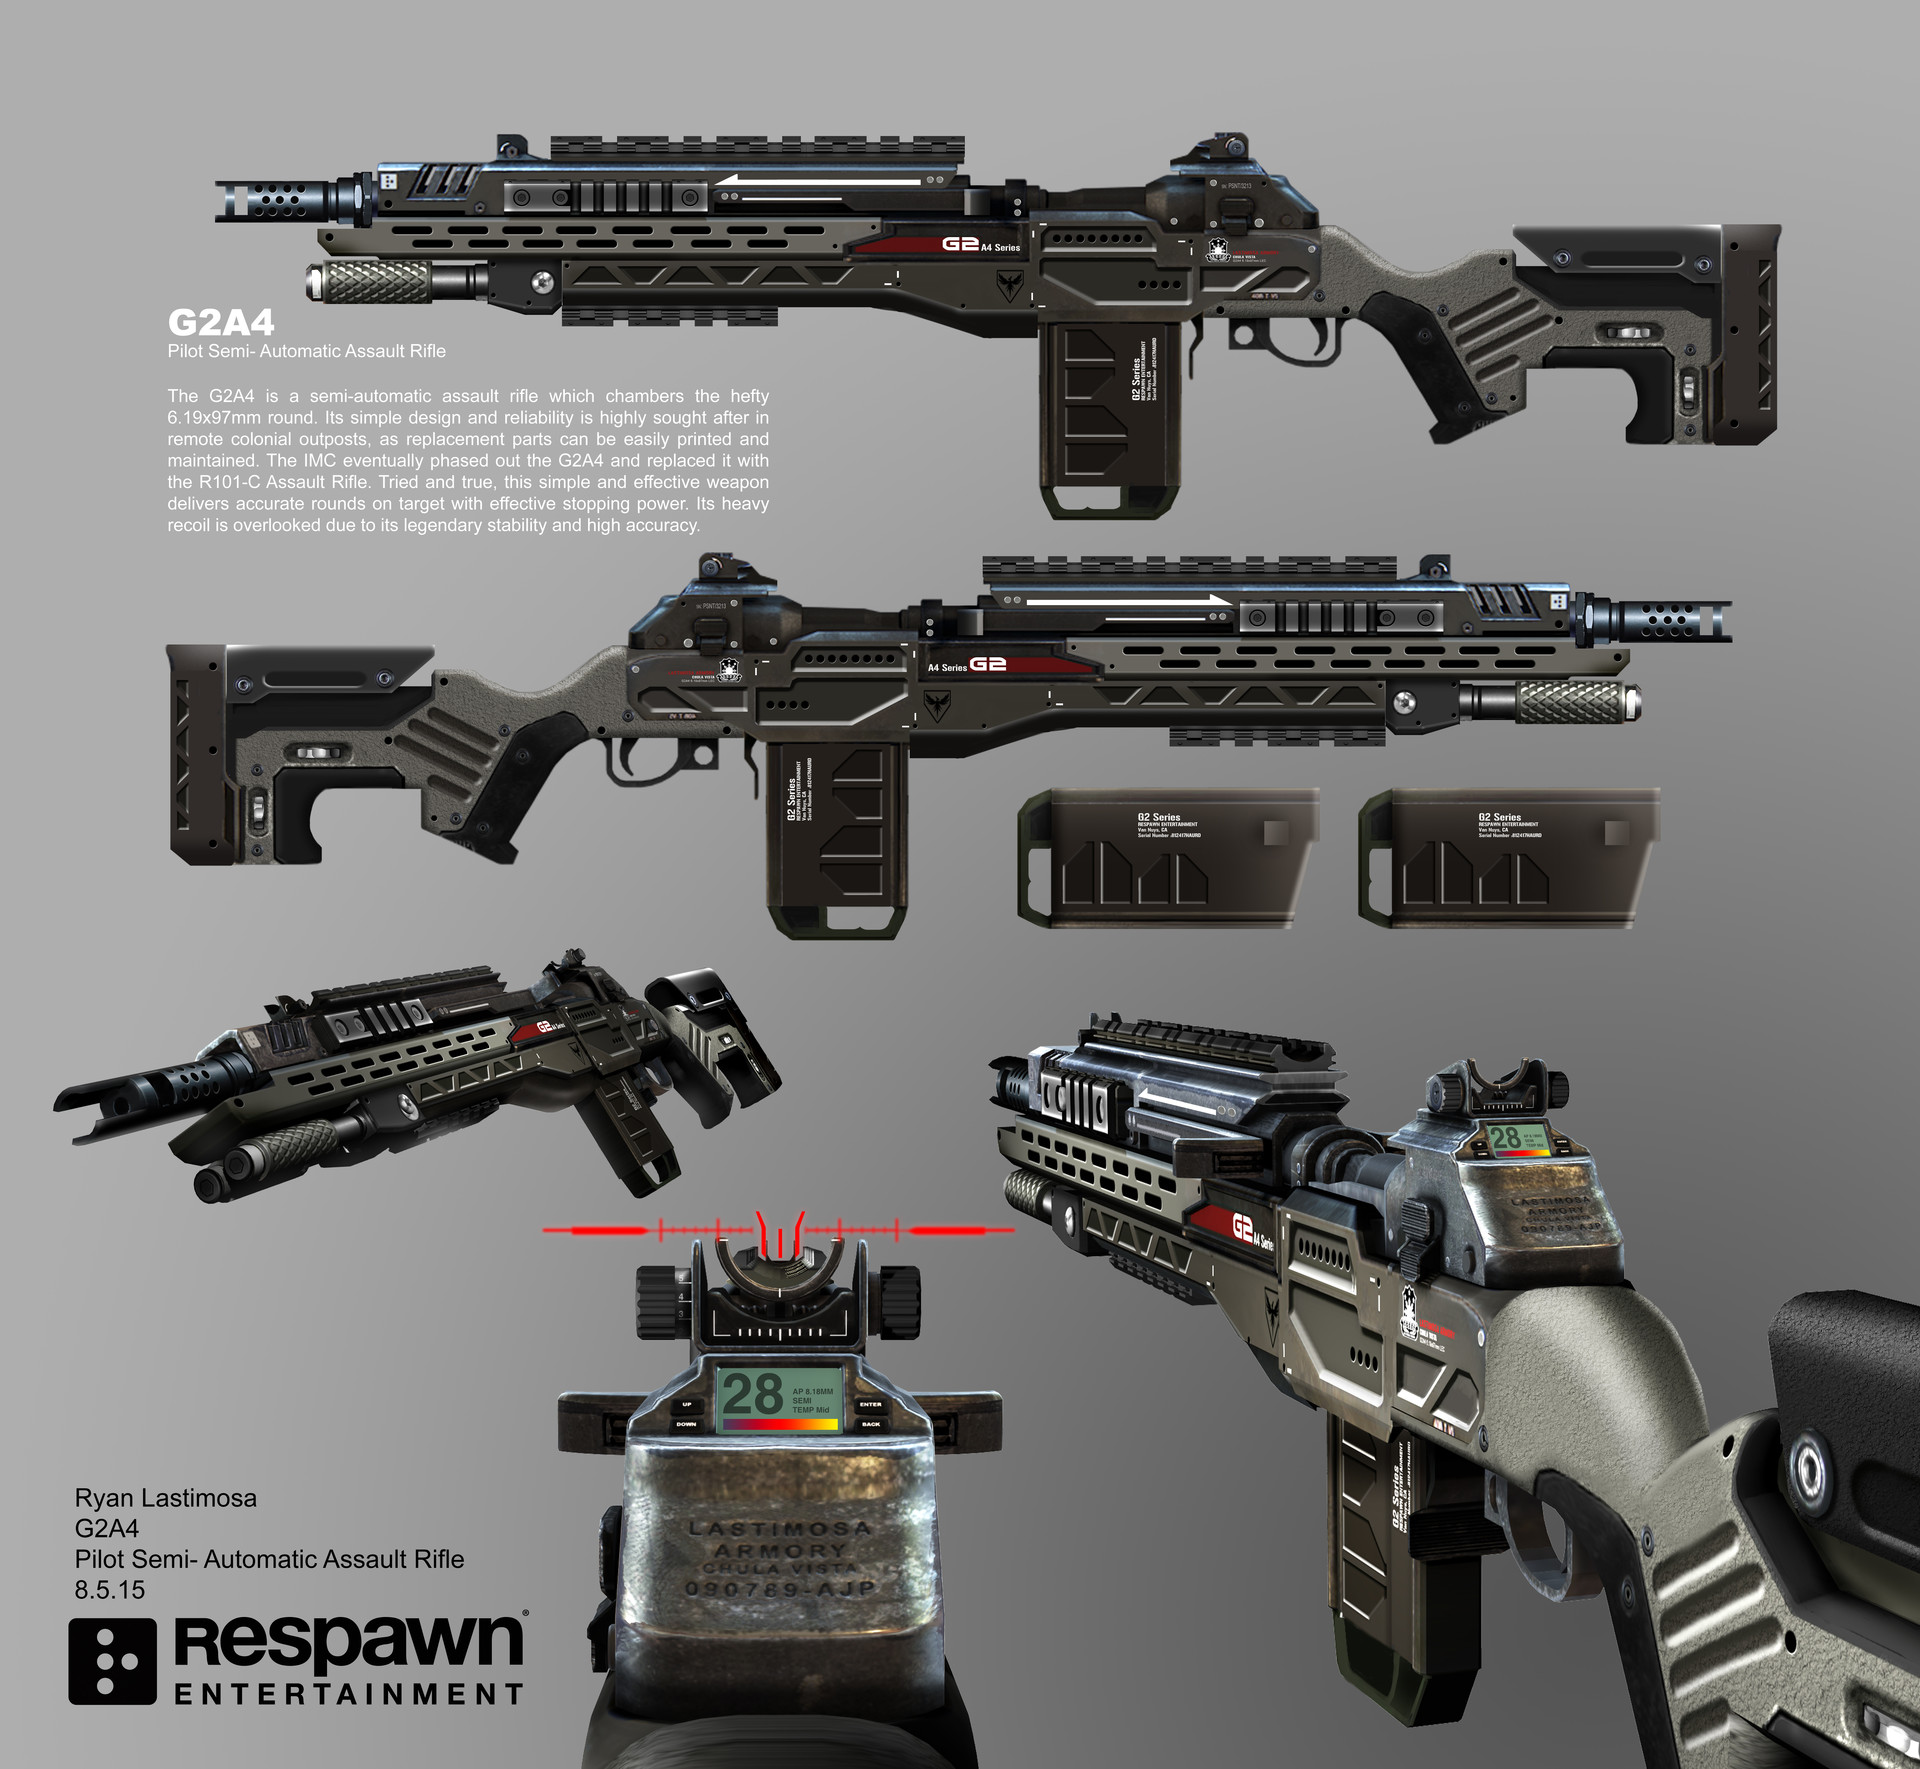 ArtStation - Titanfall 2 G2A5 Battle Rifle, Ryan Lastimosa